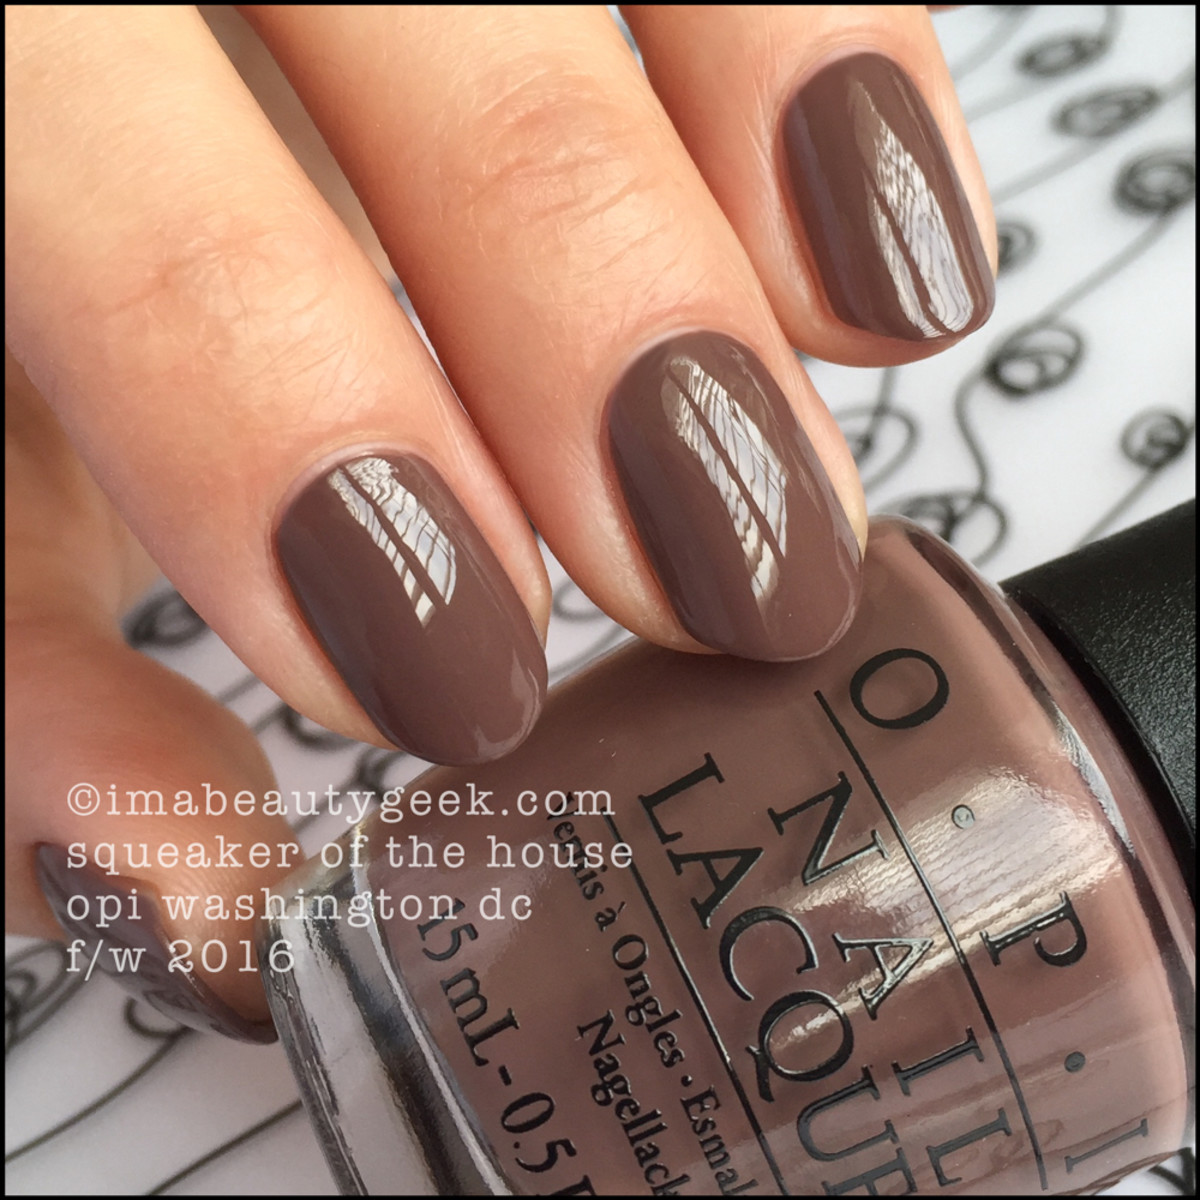 OPI Squeaker of the House_OPI Washington DC 2016 Swatches Review